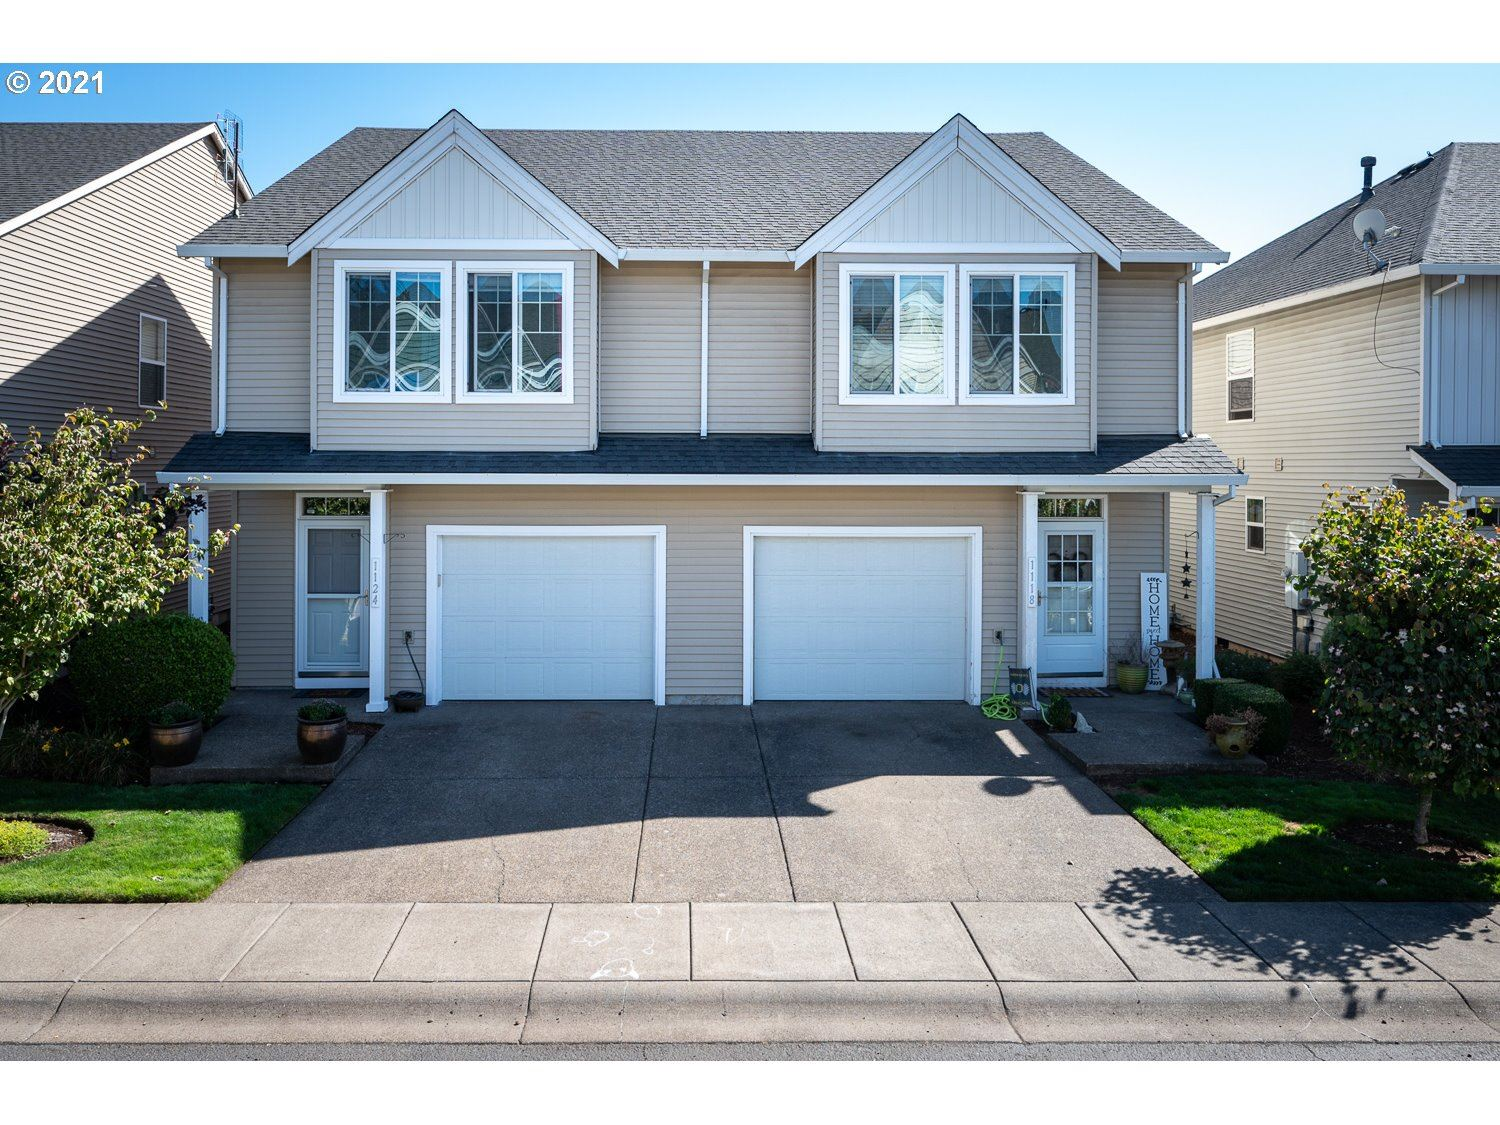 1124 N SPRUCE CT, Canby, OR 97013 - MLS#: 21025365